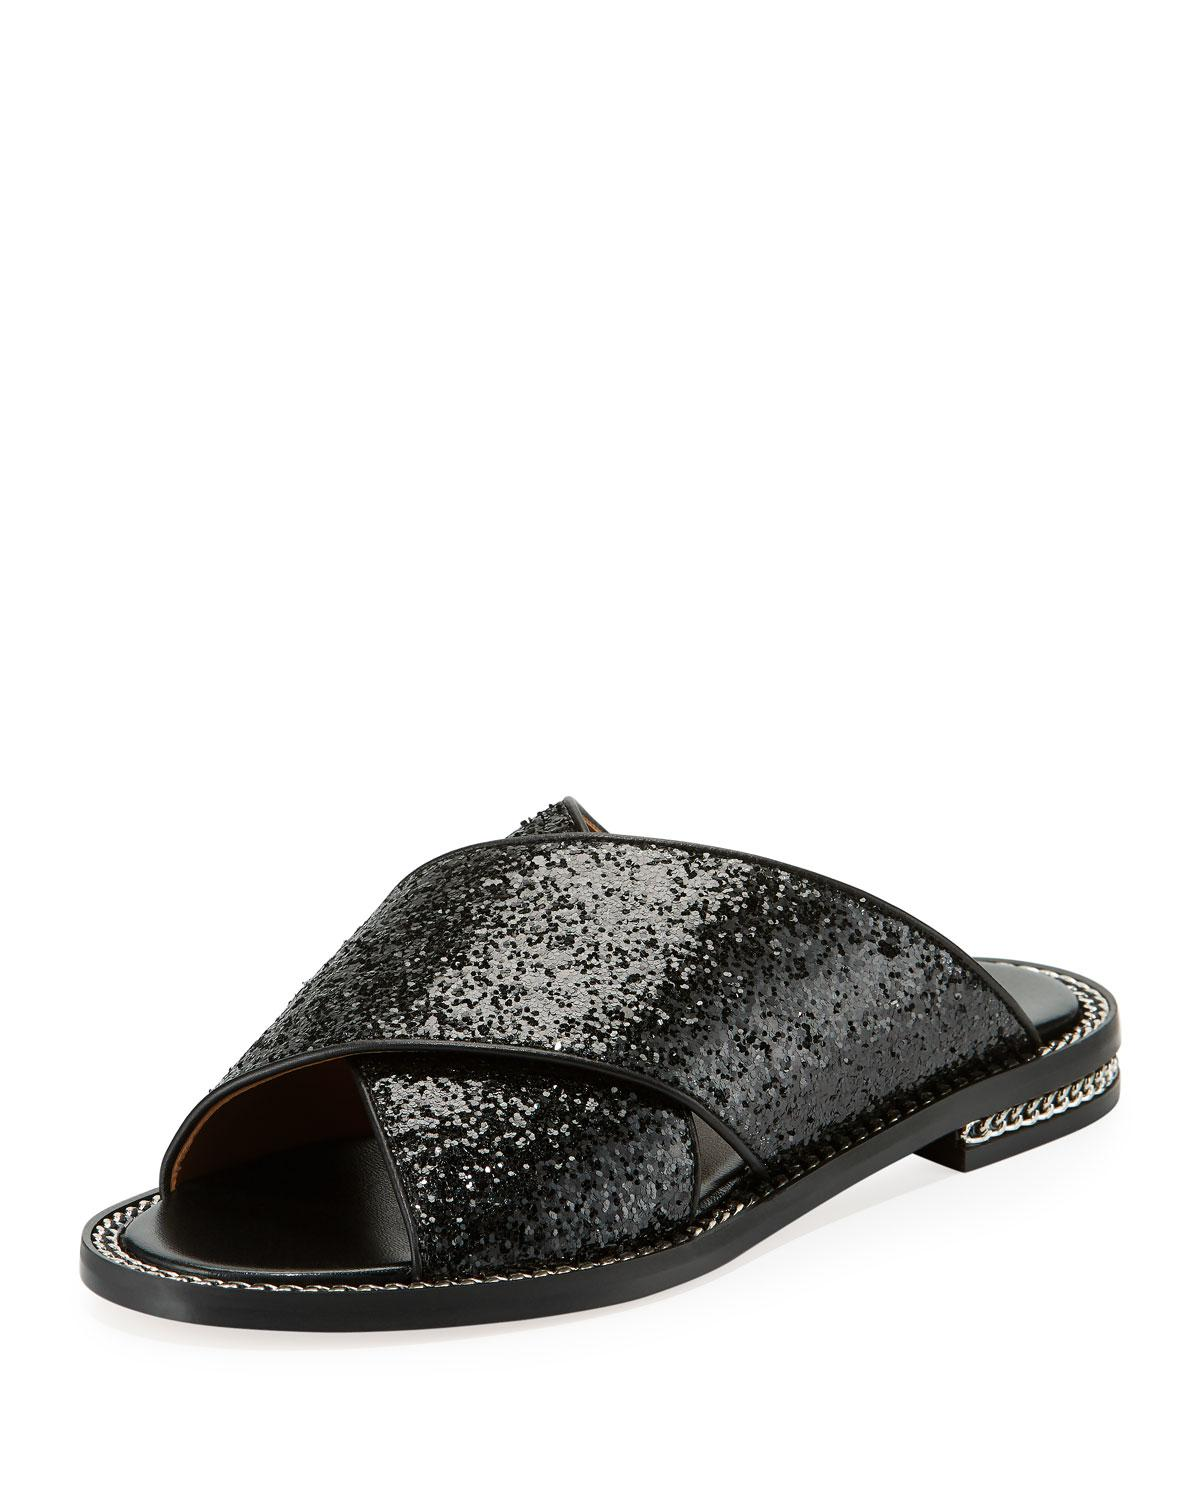 e5de8c99102f5 Lyst - Givenchy Chain-trim Crisscross Flat Sandal in Black for Men